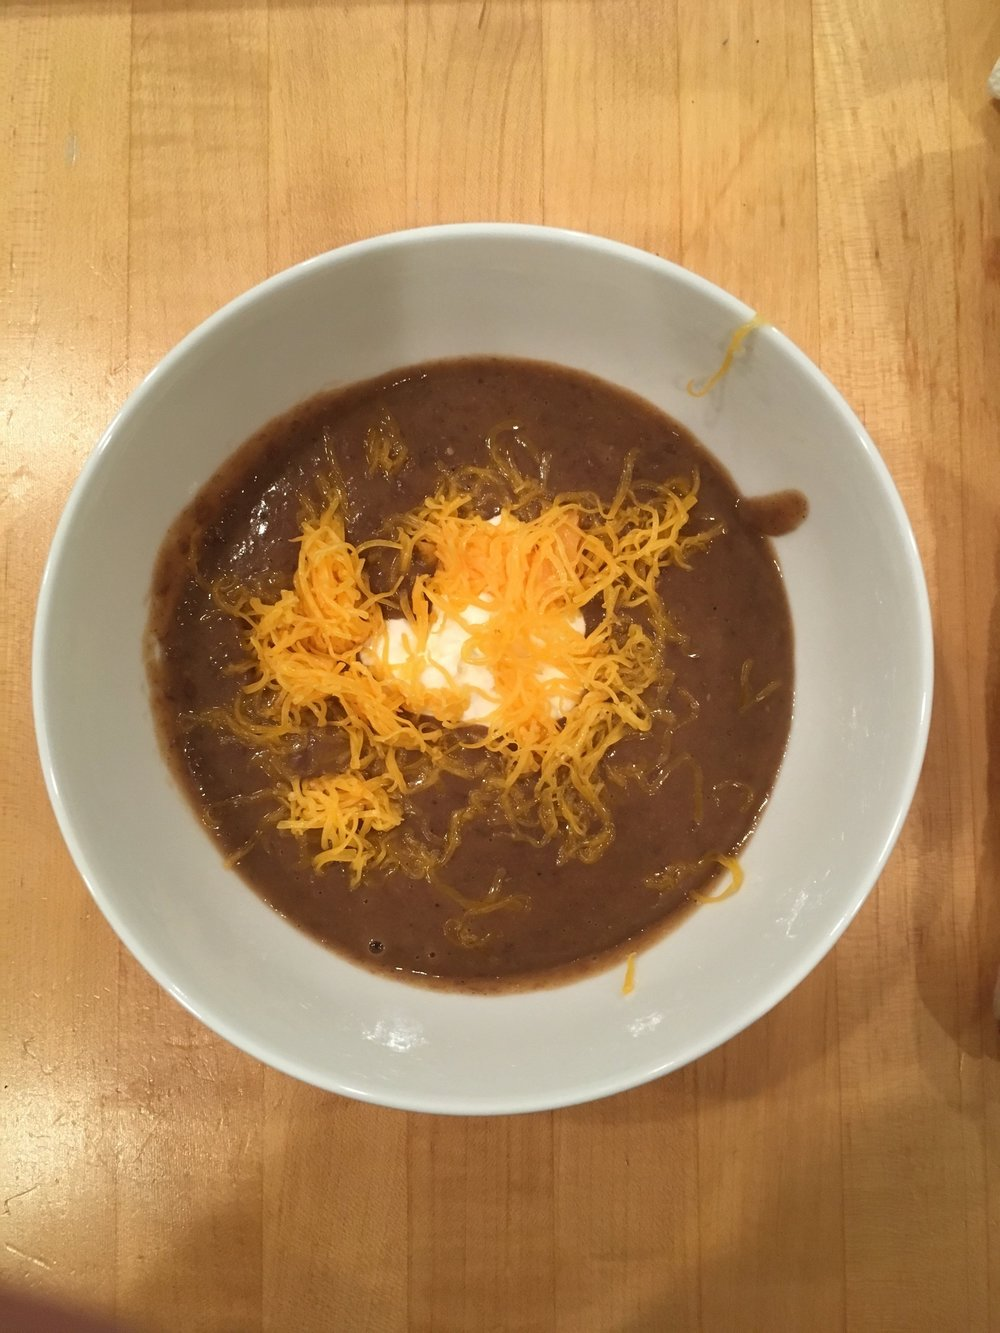 Black Bean Soup  Ingredients  -3 tablespoons olive oil -1 large onion, cut in half and thinly sliced -1½ teaspoons sea salt -3 large garlic cloves, sliced -12 sprigs fresh coriander, chopped -1 teaspoon ground cumin -¼-½ teaspoon chili powder -¼-½ teaspoon chipotle chili powder -4 cups black beans (soak overnight then drain first) -3 cups chicken stock  Directions  1. Heat the olive oil in a heavy-bottomed pot or casserole dish over medium-high heat. 2.Add the onion and salt and sauté for 5 minutes, stirring often and lowering the heat if the onion starts to brown too much. 3.Add the garlic, coriander and spices. 4.Cover and cook for 5 minutes more, checking every minute or so to make sure everything is gently sautéing and not burning. 5.Add the black beans and chicken stock, bring the mixture to a boil and simmer, uncovered, for 15 minutes. 6.Using an immersion blender, blend the soup directly in the pot until almost completely smooth. Adjust the seasoning to taste, and sprinkle with cheese.If you want, you can even add a dollop of SCD yogurt as a mock-sour cream. Enjoy!